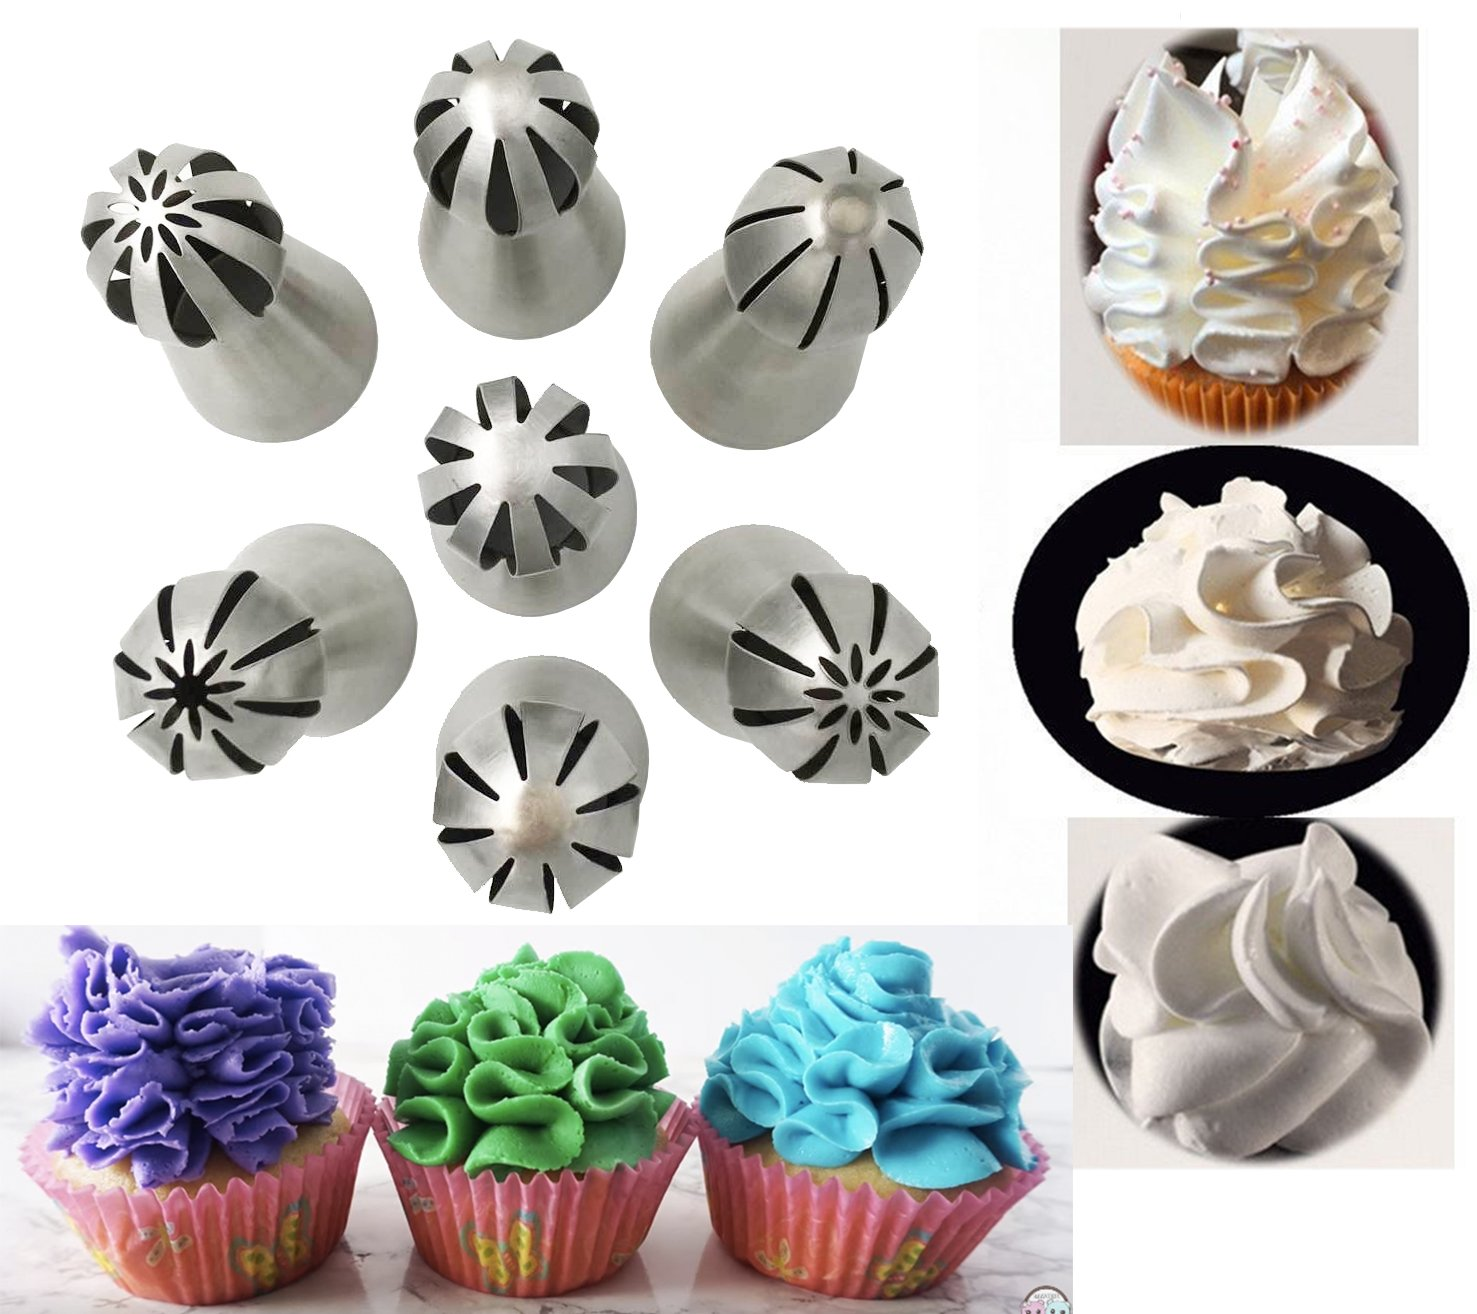 New JJMG Ball Russian Stainless Steel Tips Tulip Sphere Whip Cream Buttercream Icing Piping Nozzles DIY Baking Tools Small Torch for Decoration Cupcake Fondant Cake Pastry (7 pcs Ball Russian tips) by JJMG